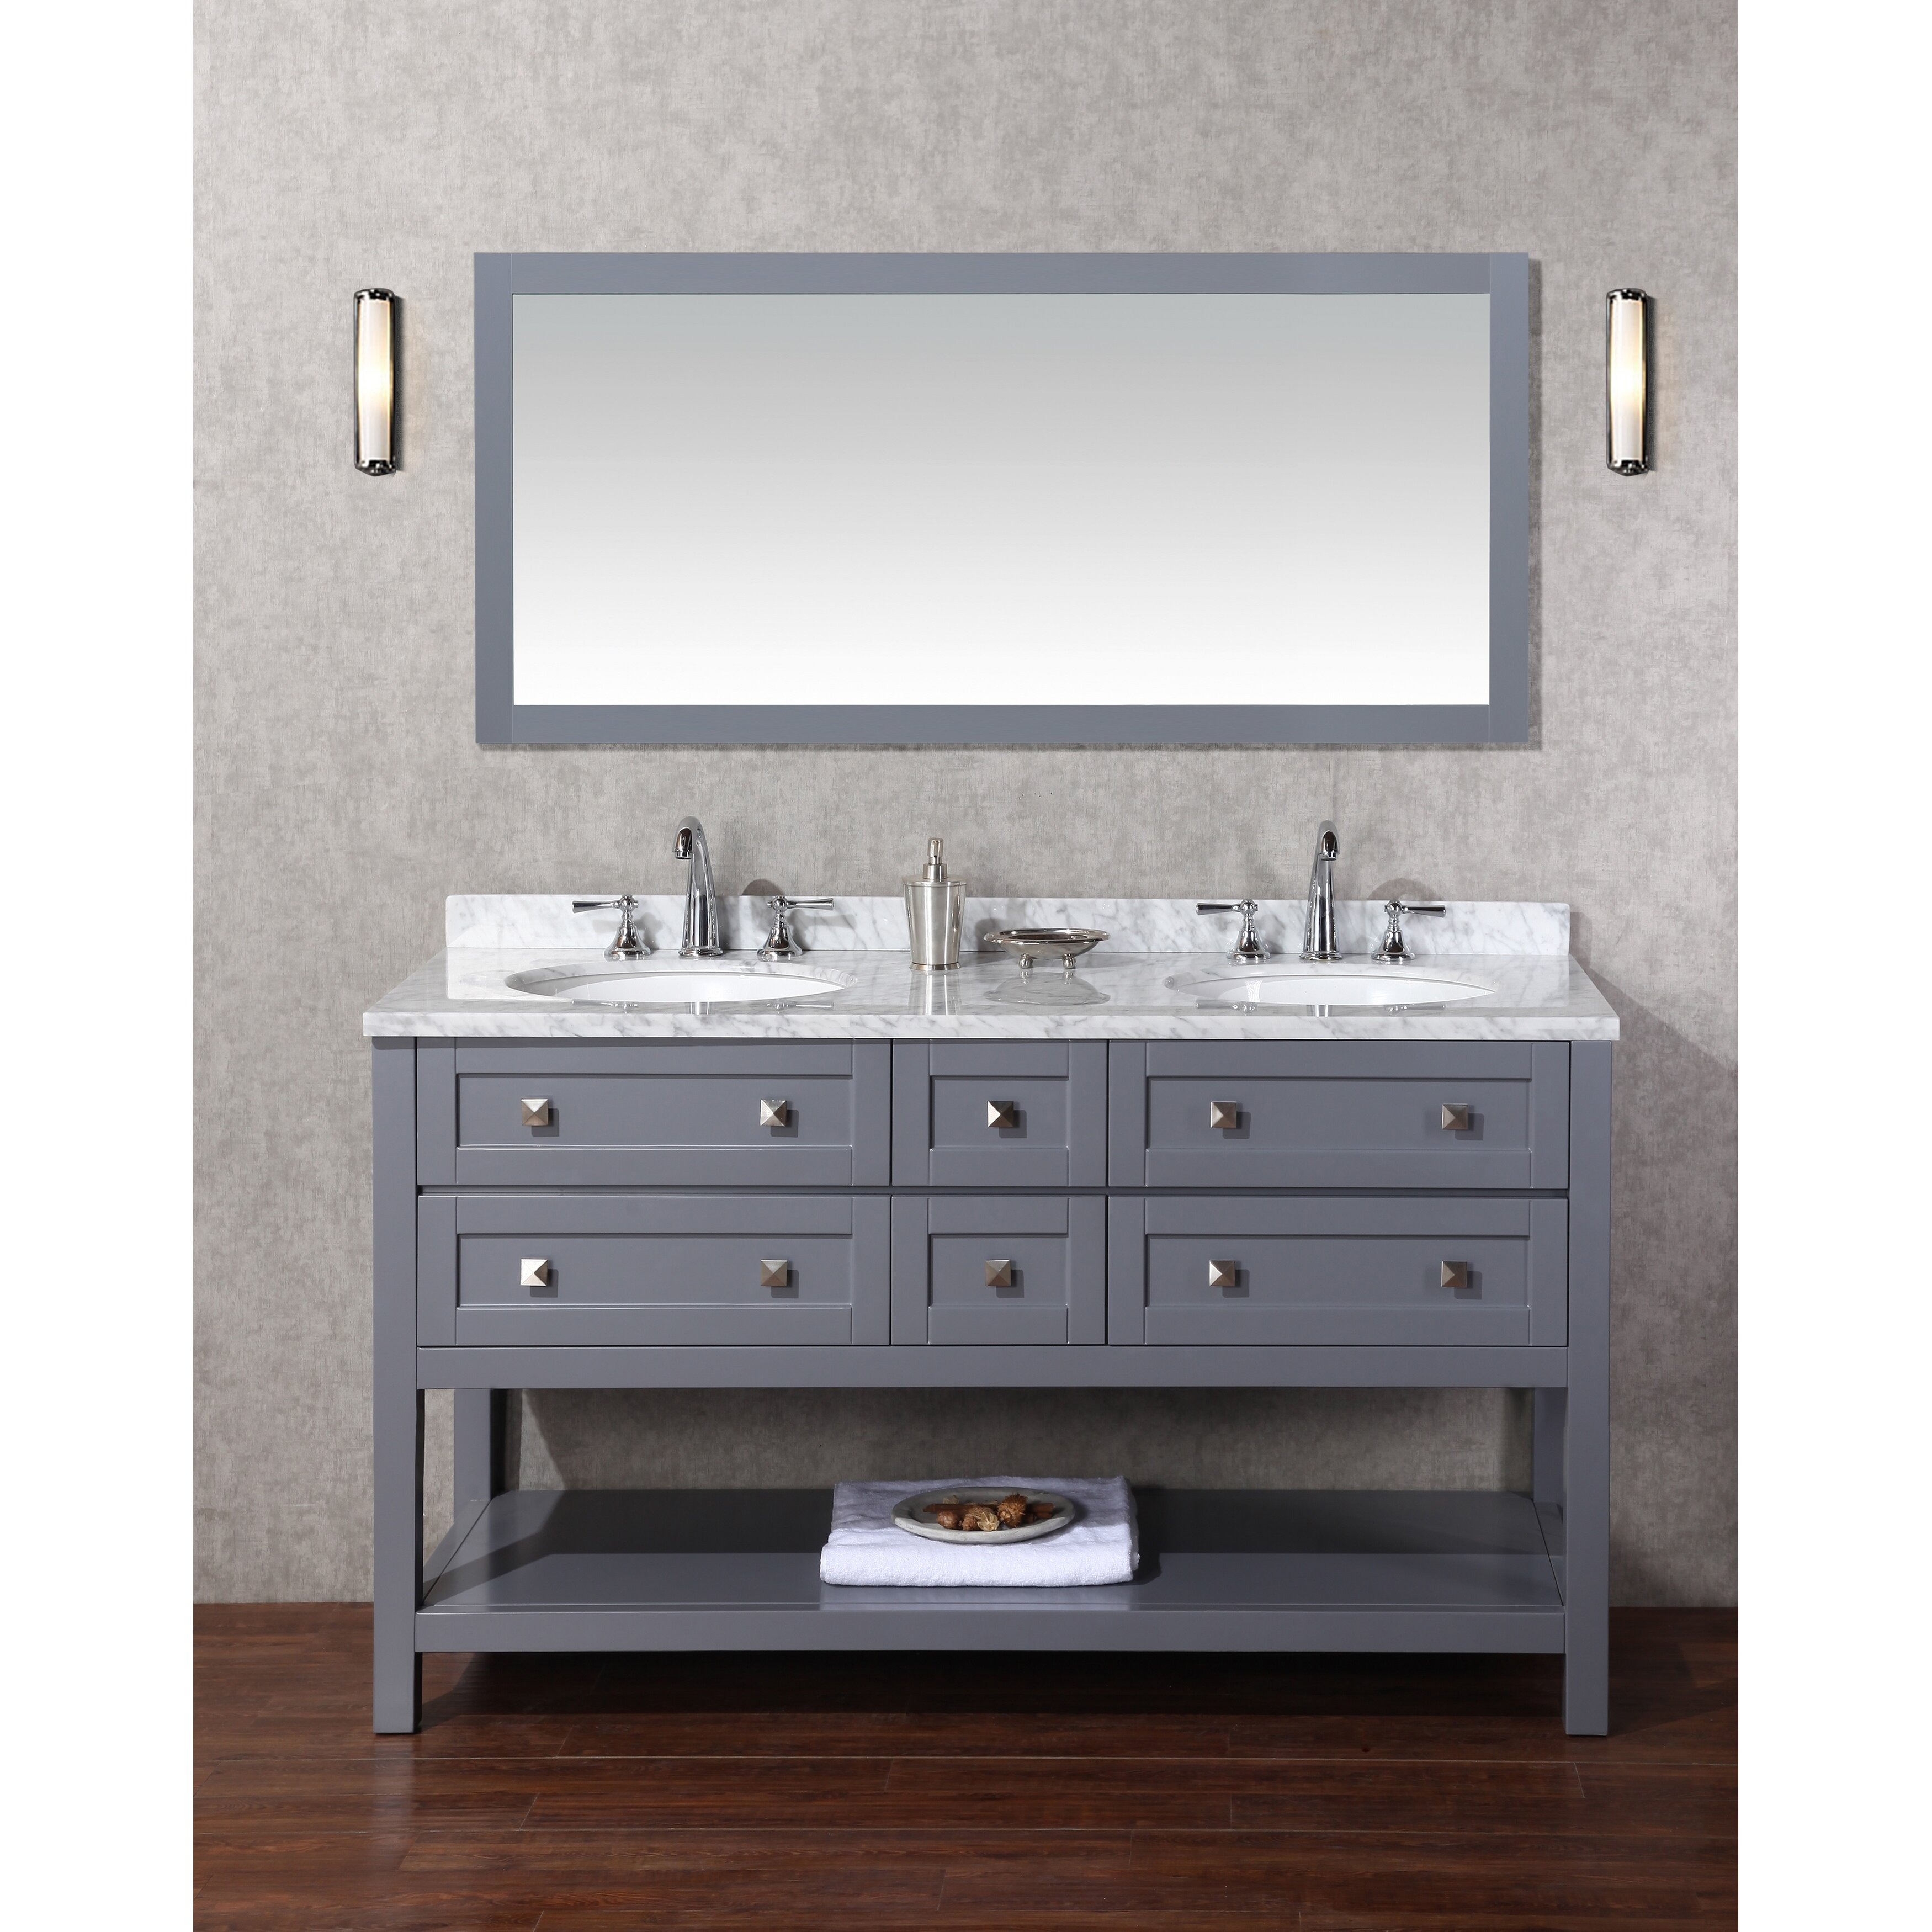 Dcor design albia 60 double modern bathroom vanity set with mirror reviews wayfair - Kona modern bathroom vanity set ...